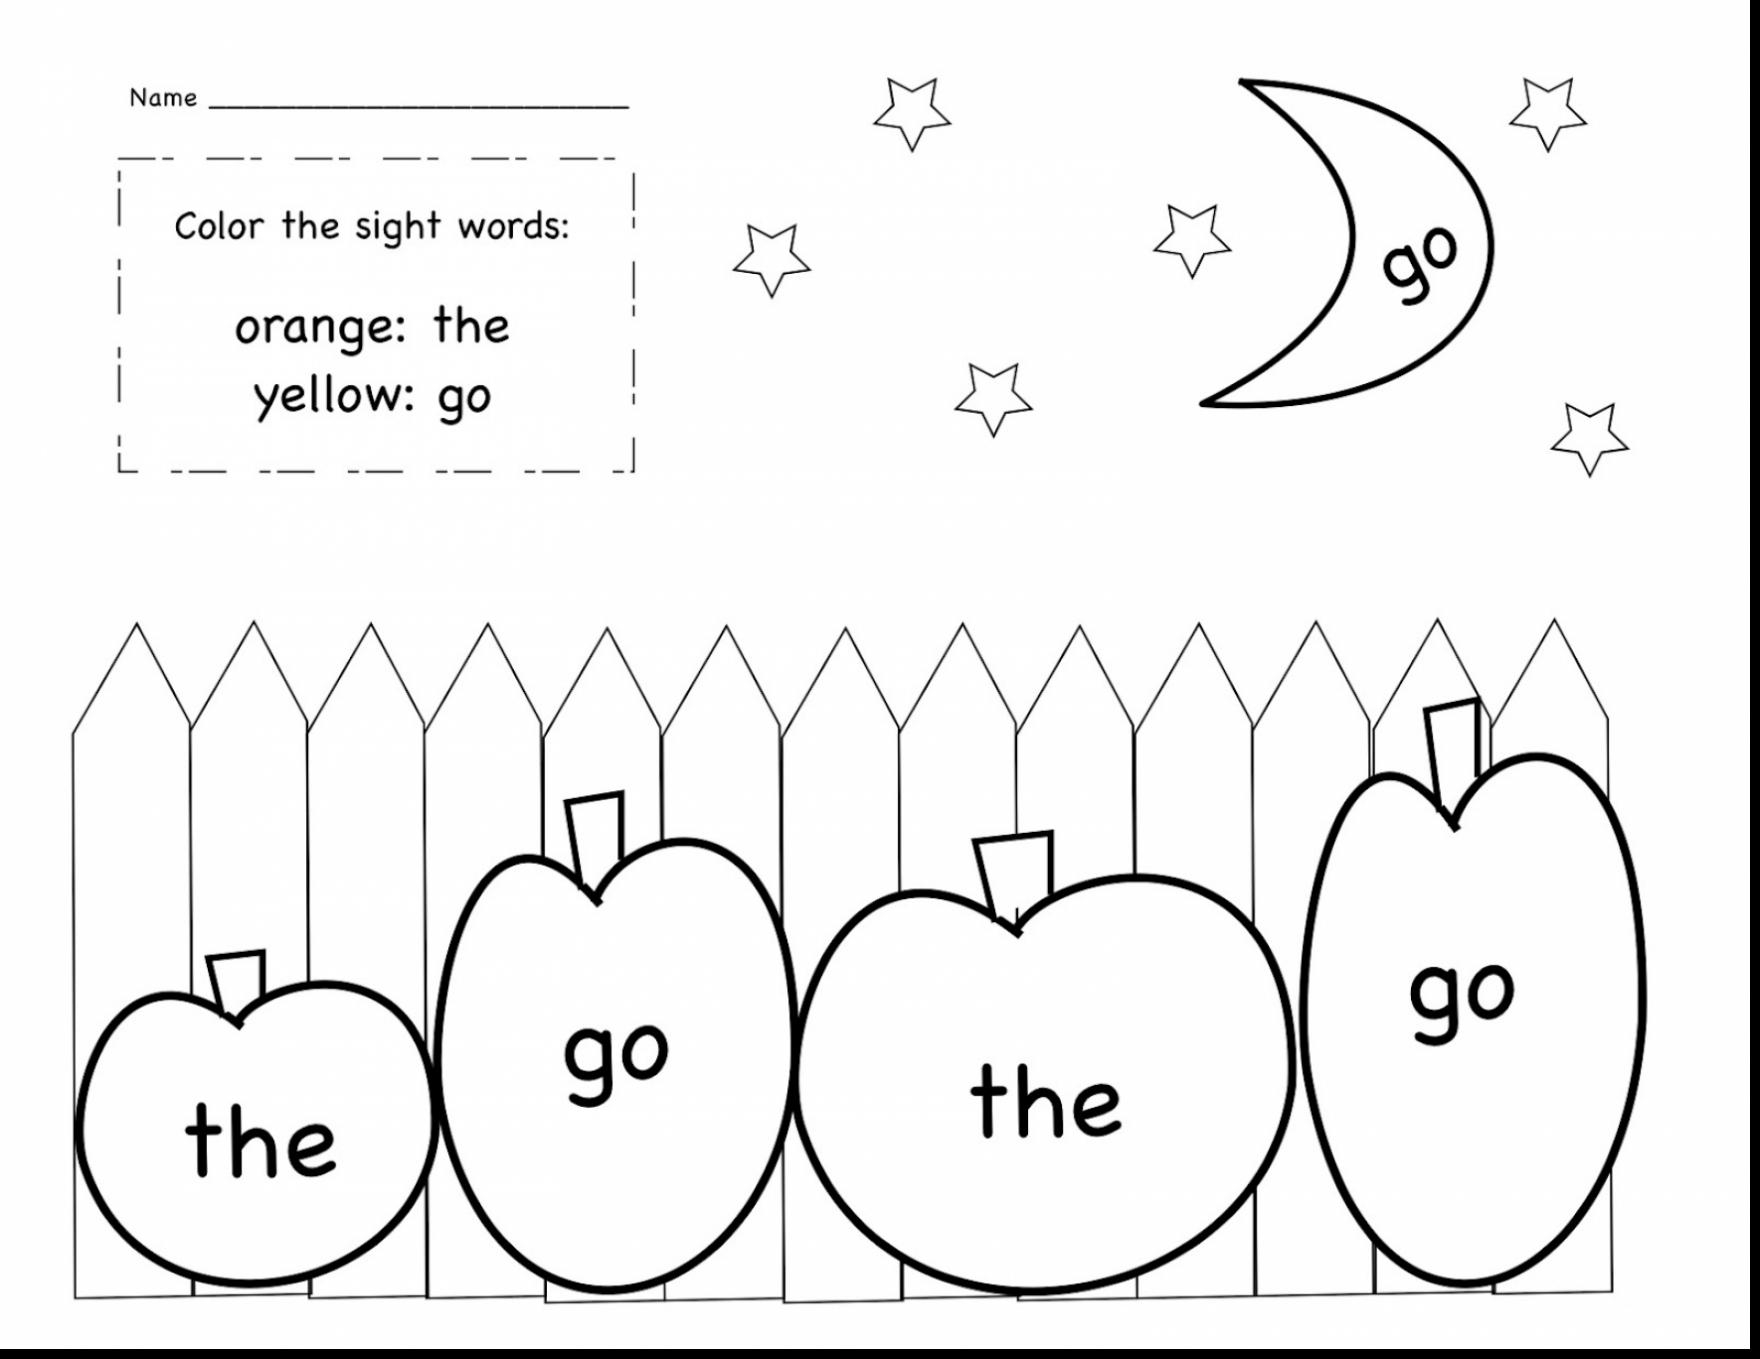 sight word coloring pages - sight word coloring pages sight word coloring pages free archives free coloring pages for kids to